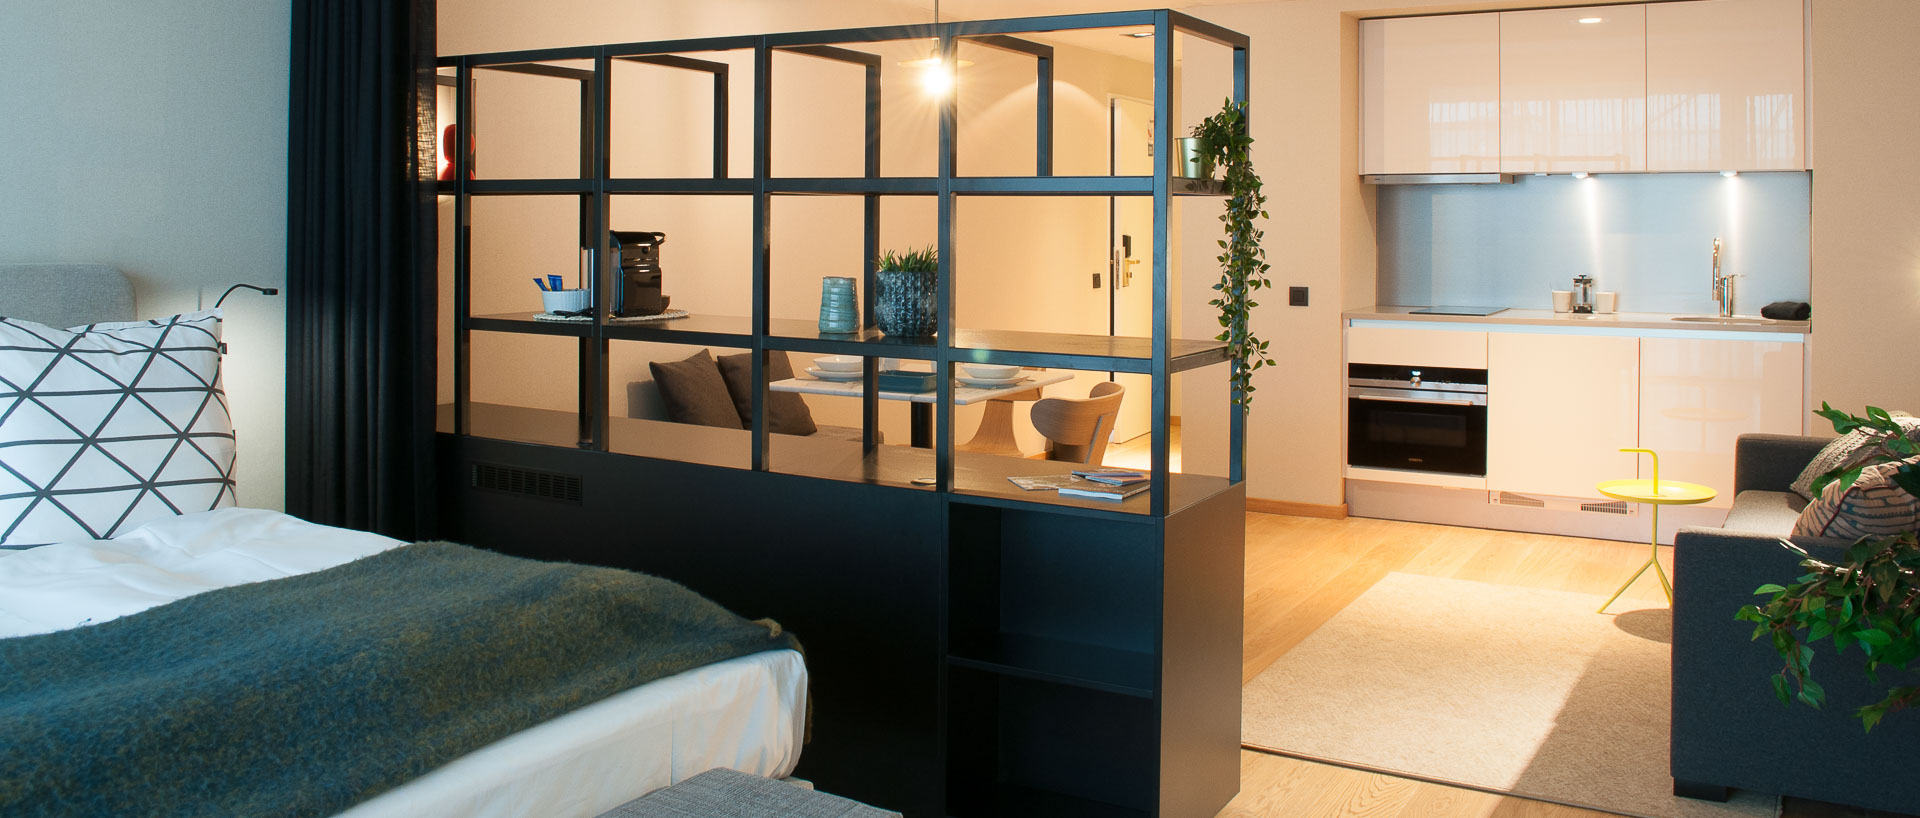 Bedroom and kitchenette PREMIER SUITES PLUS Antwerp